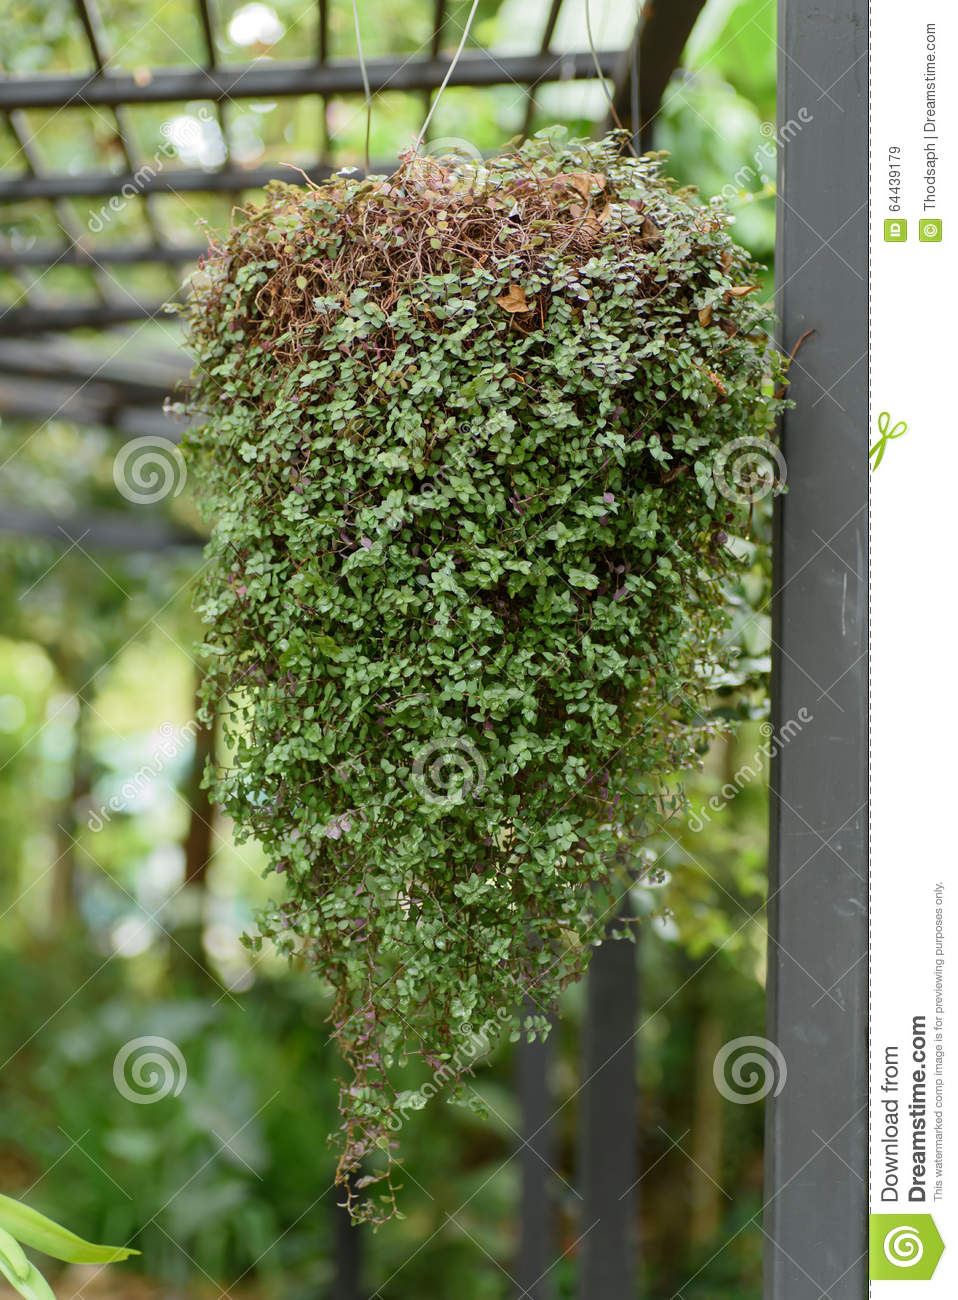 Download Leafy Plant Hanging In The Garden Stock Image   Image Of Decorative,  Floral: